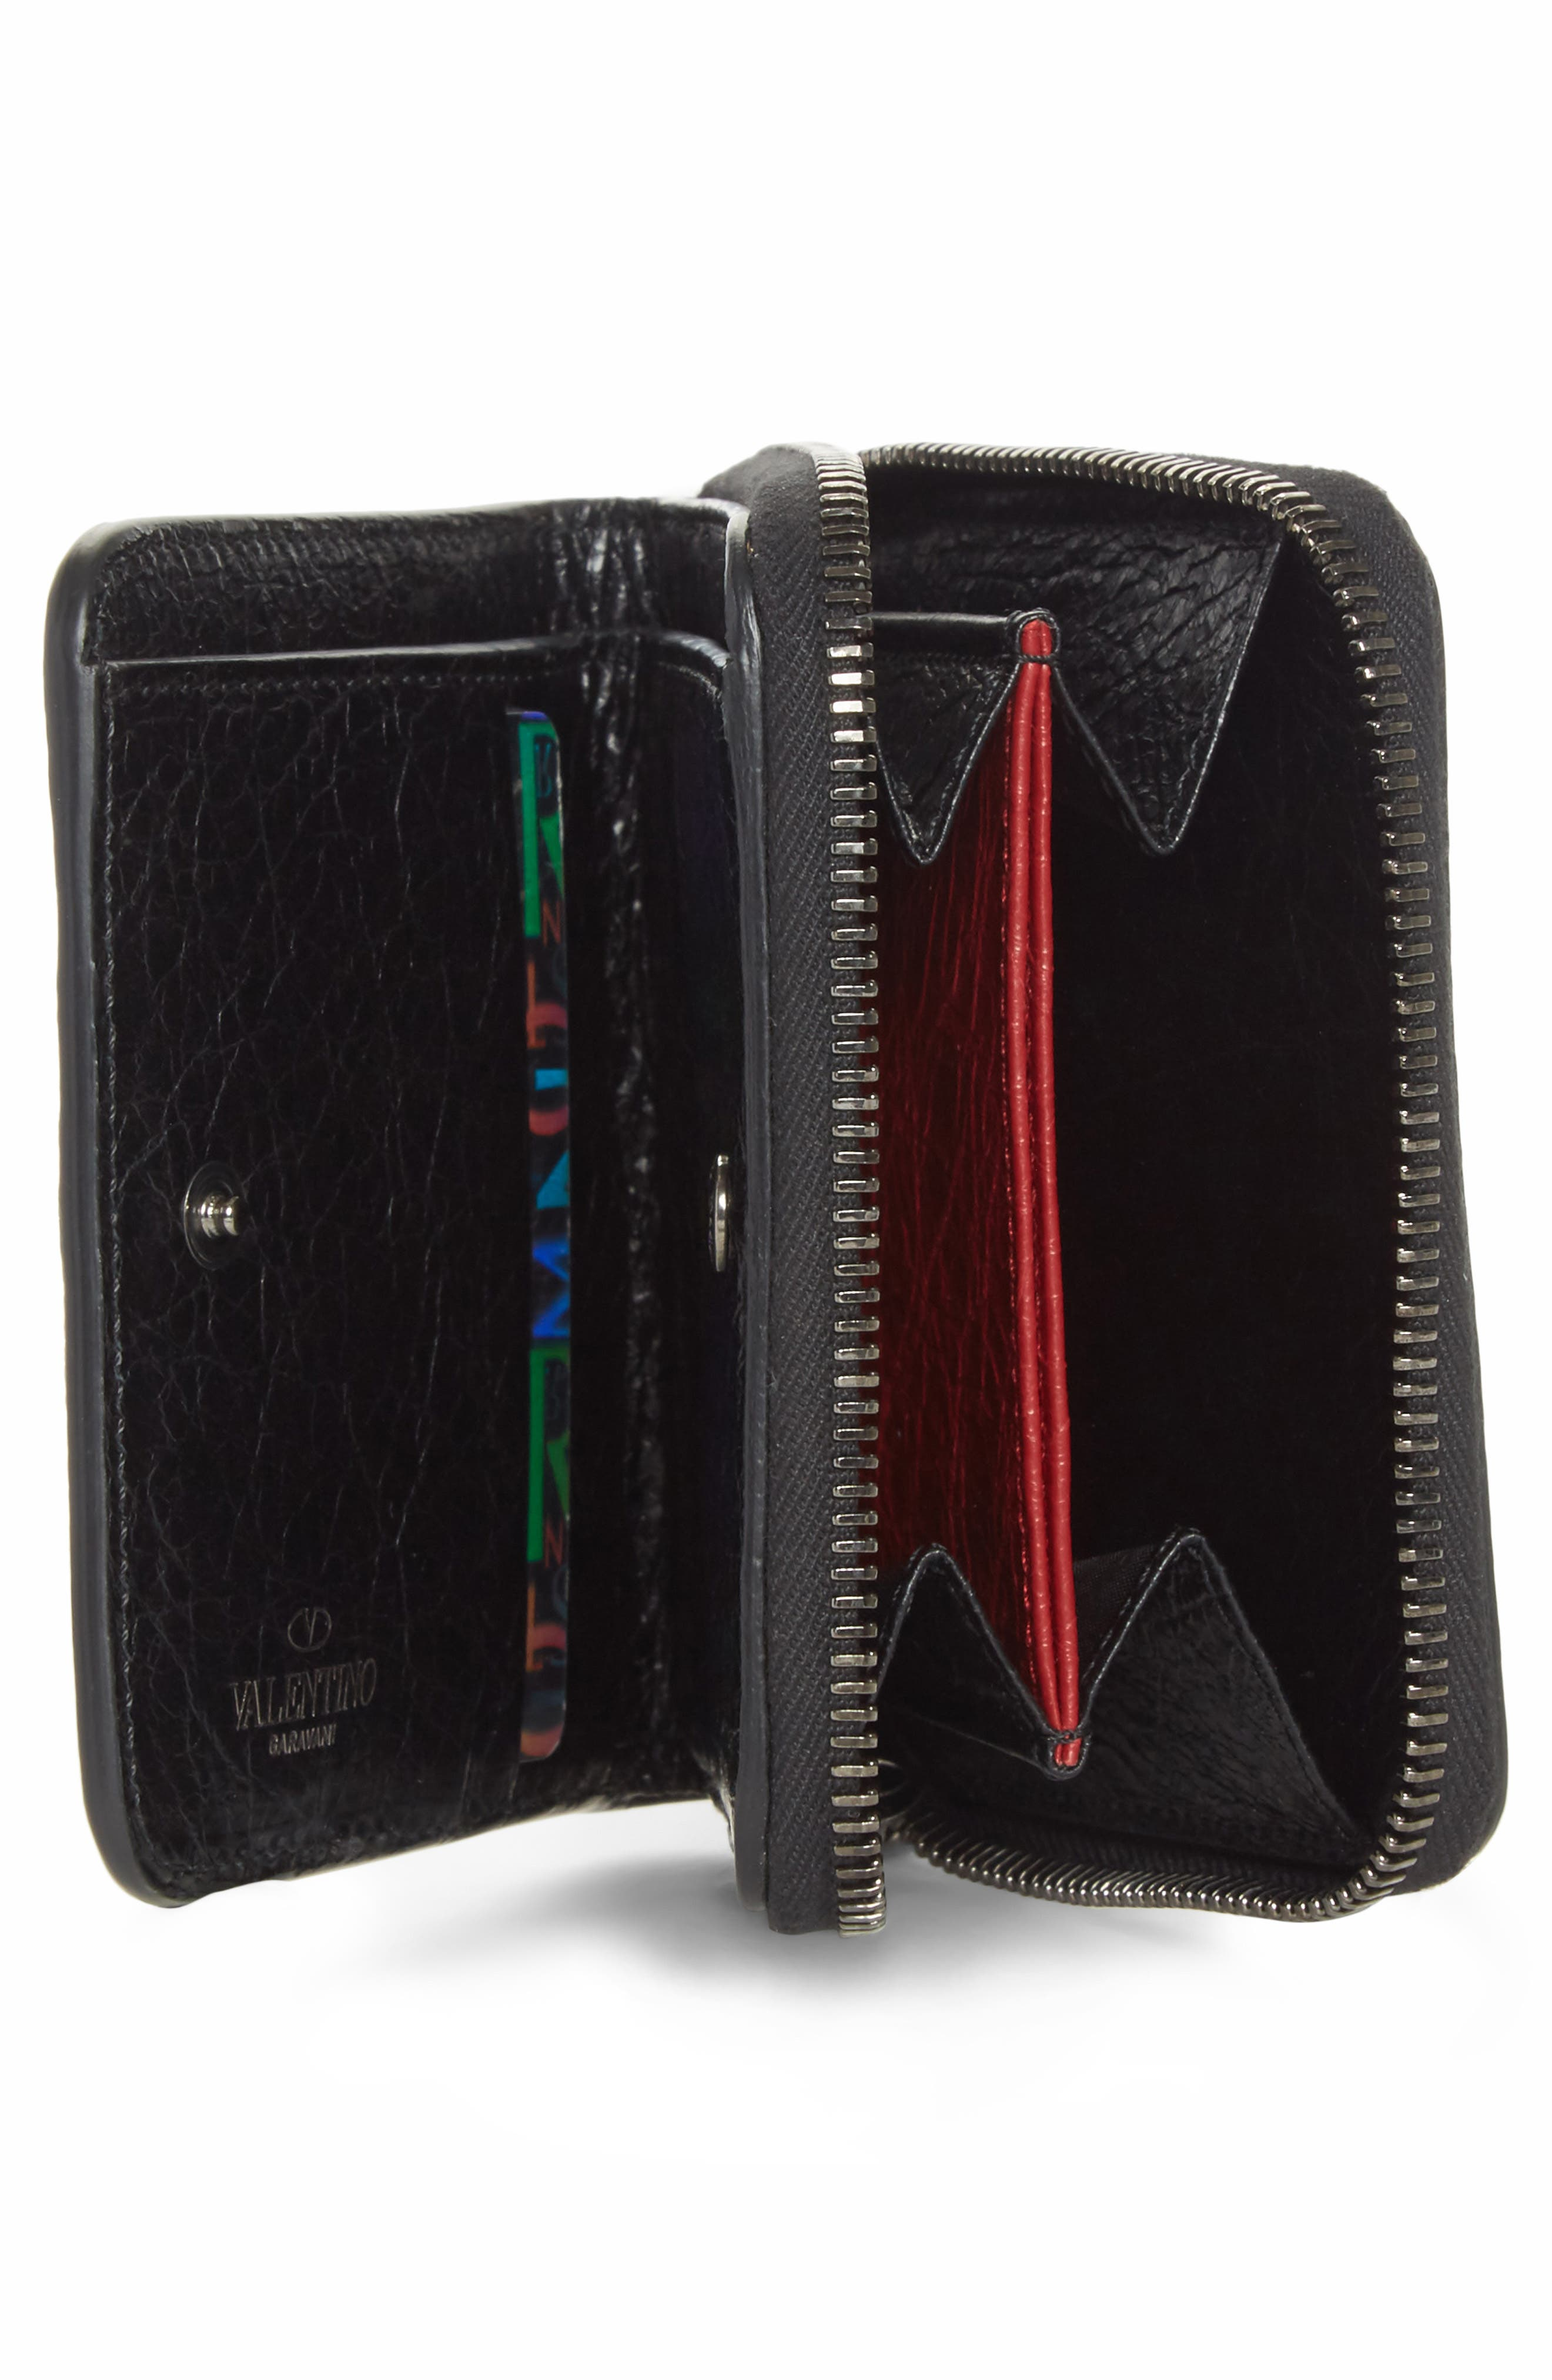 Rockstud Leather French Wallet,                             Alternate thumbnail 2, color,                             Black